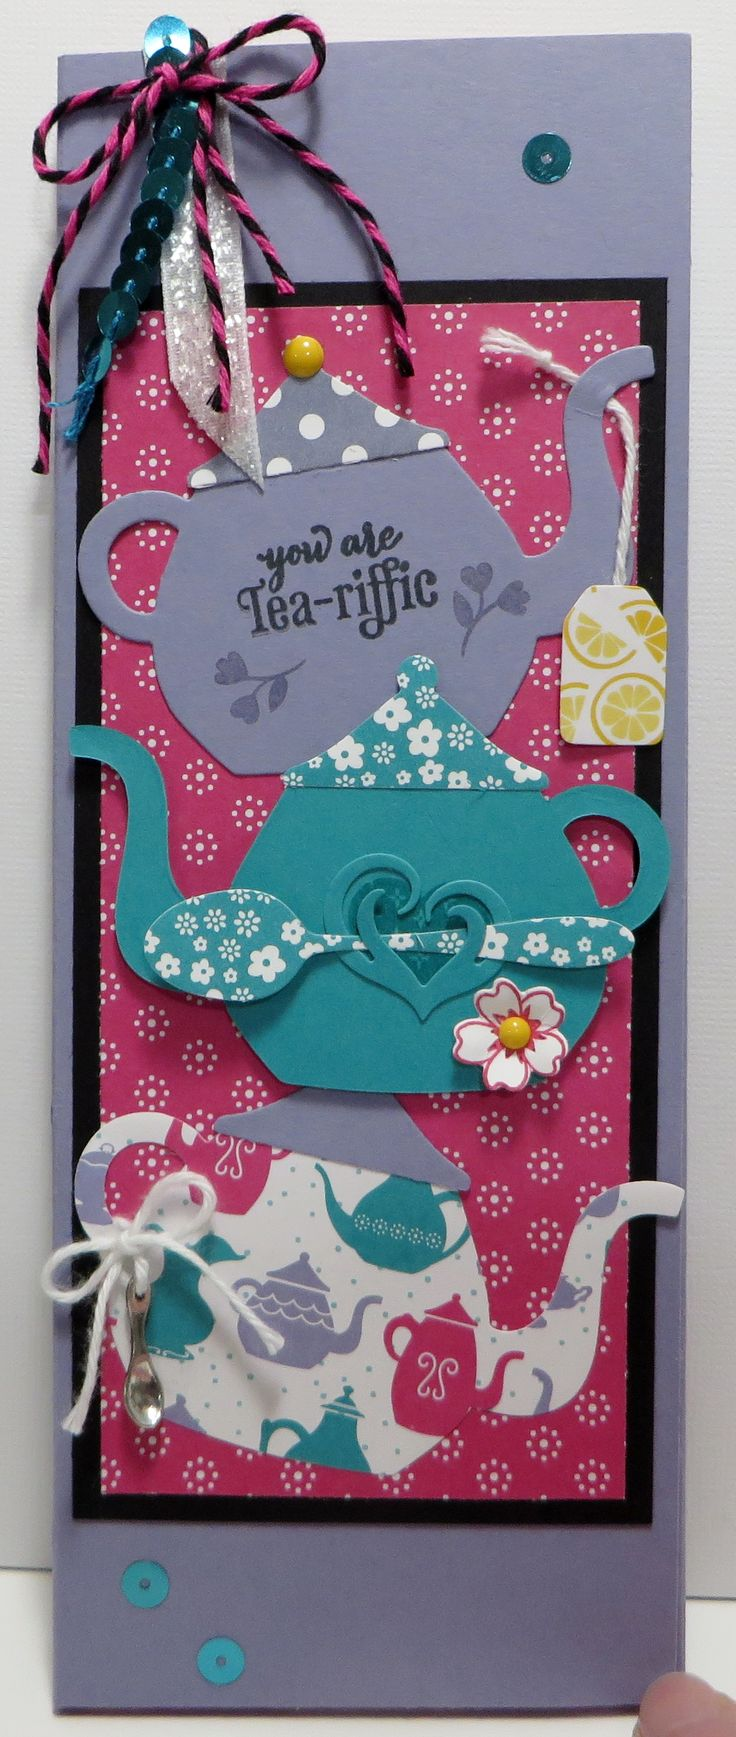 Stampin' Up Have a Cuppa, A Nice Cuppa Sticky Note Pad Gift Card Sticky Pad Holder created by Lynn Gauthier using SU's Have a Cuppa Designer Series Paper, A Nice Cuppa Stamp Set and Cups & Kettle Framelits Dies. Go to http://lynnslocker.blogspot.com/2016/01/stampin-up-have-cuppa-nice-cuppa-sticky.html for instructions for this project and to enter comment for blog candy.